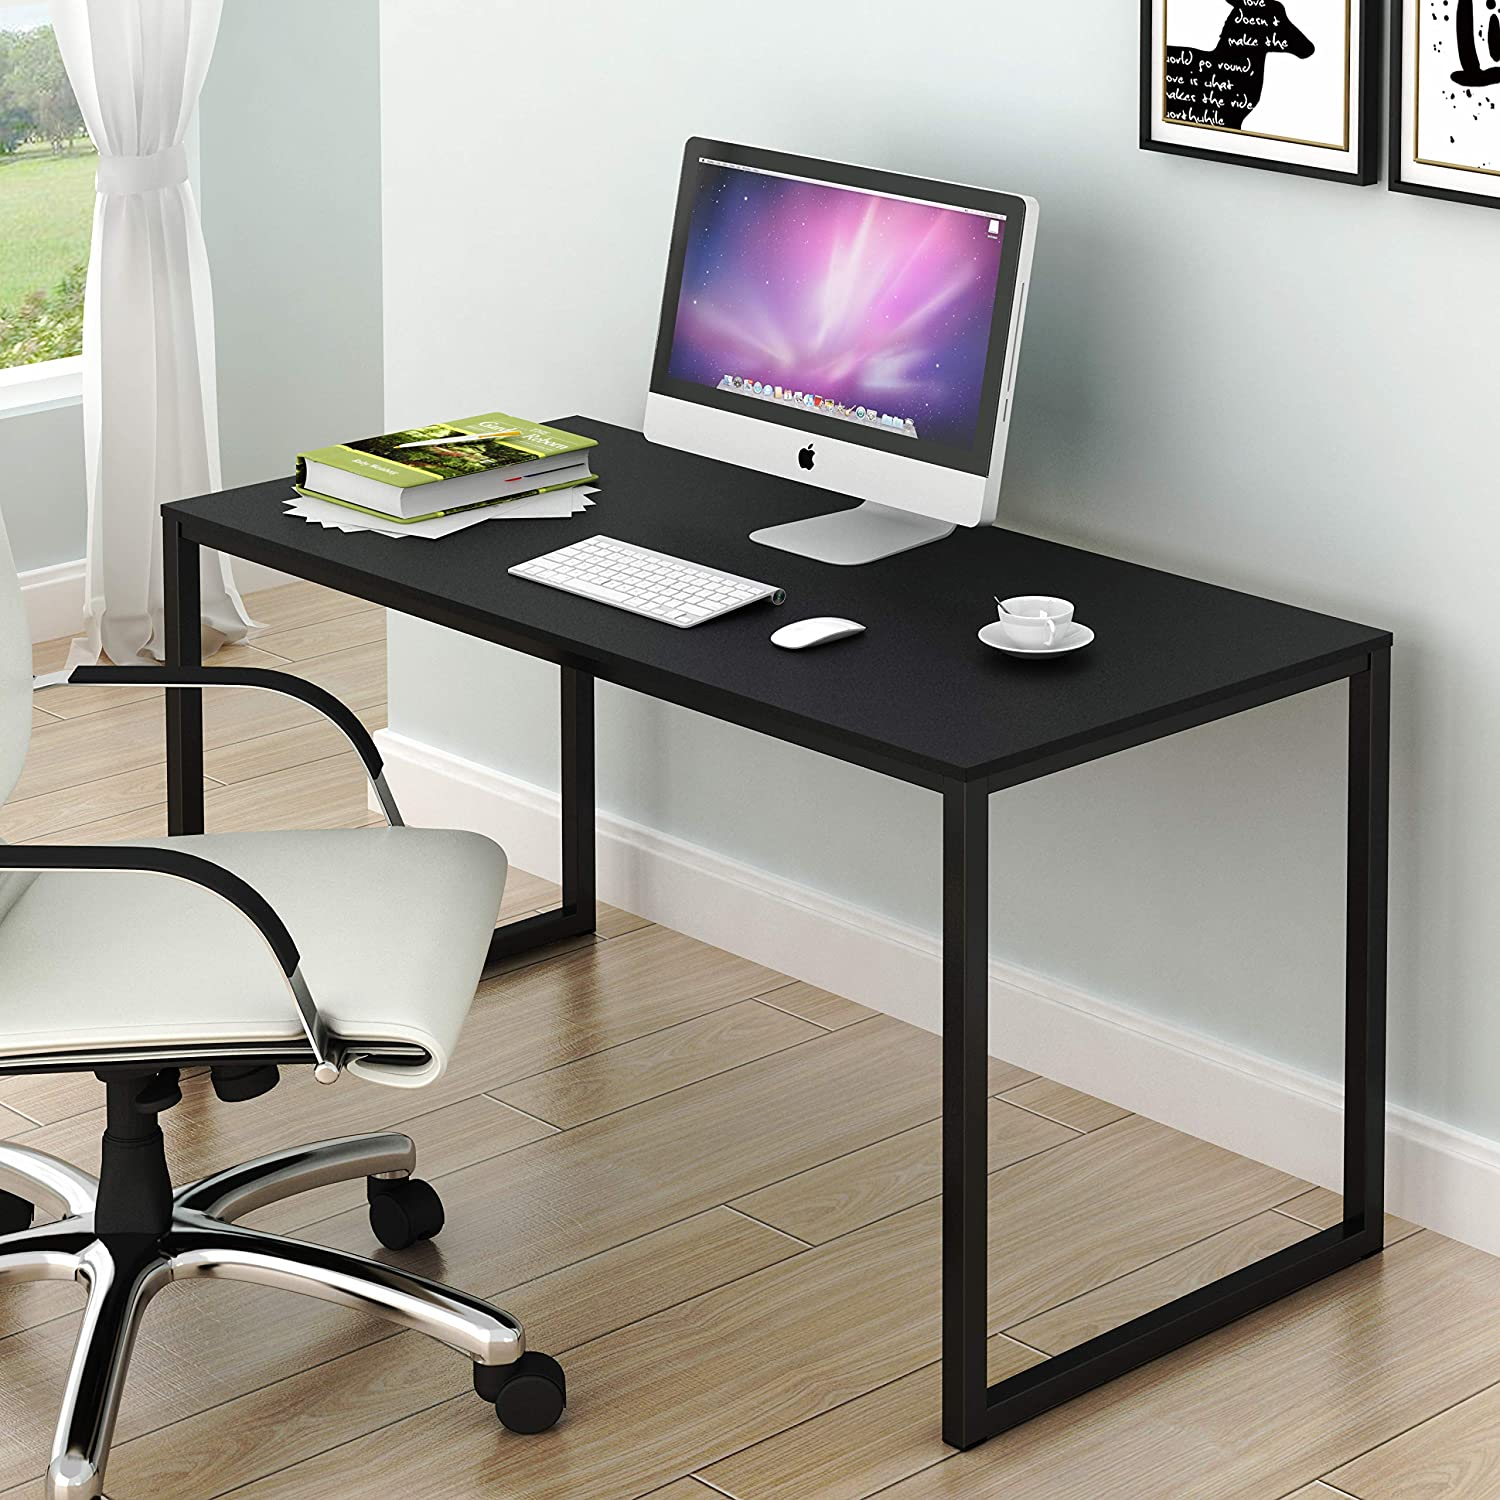 SHW Home Office 48-Inch Computer Desk, Black - Walmart.com